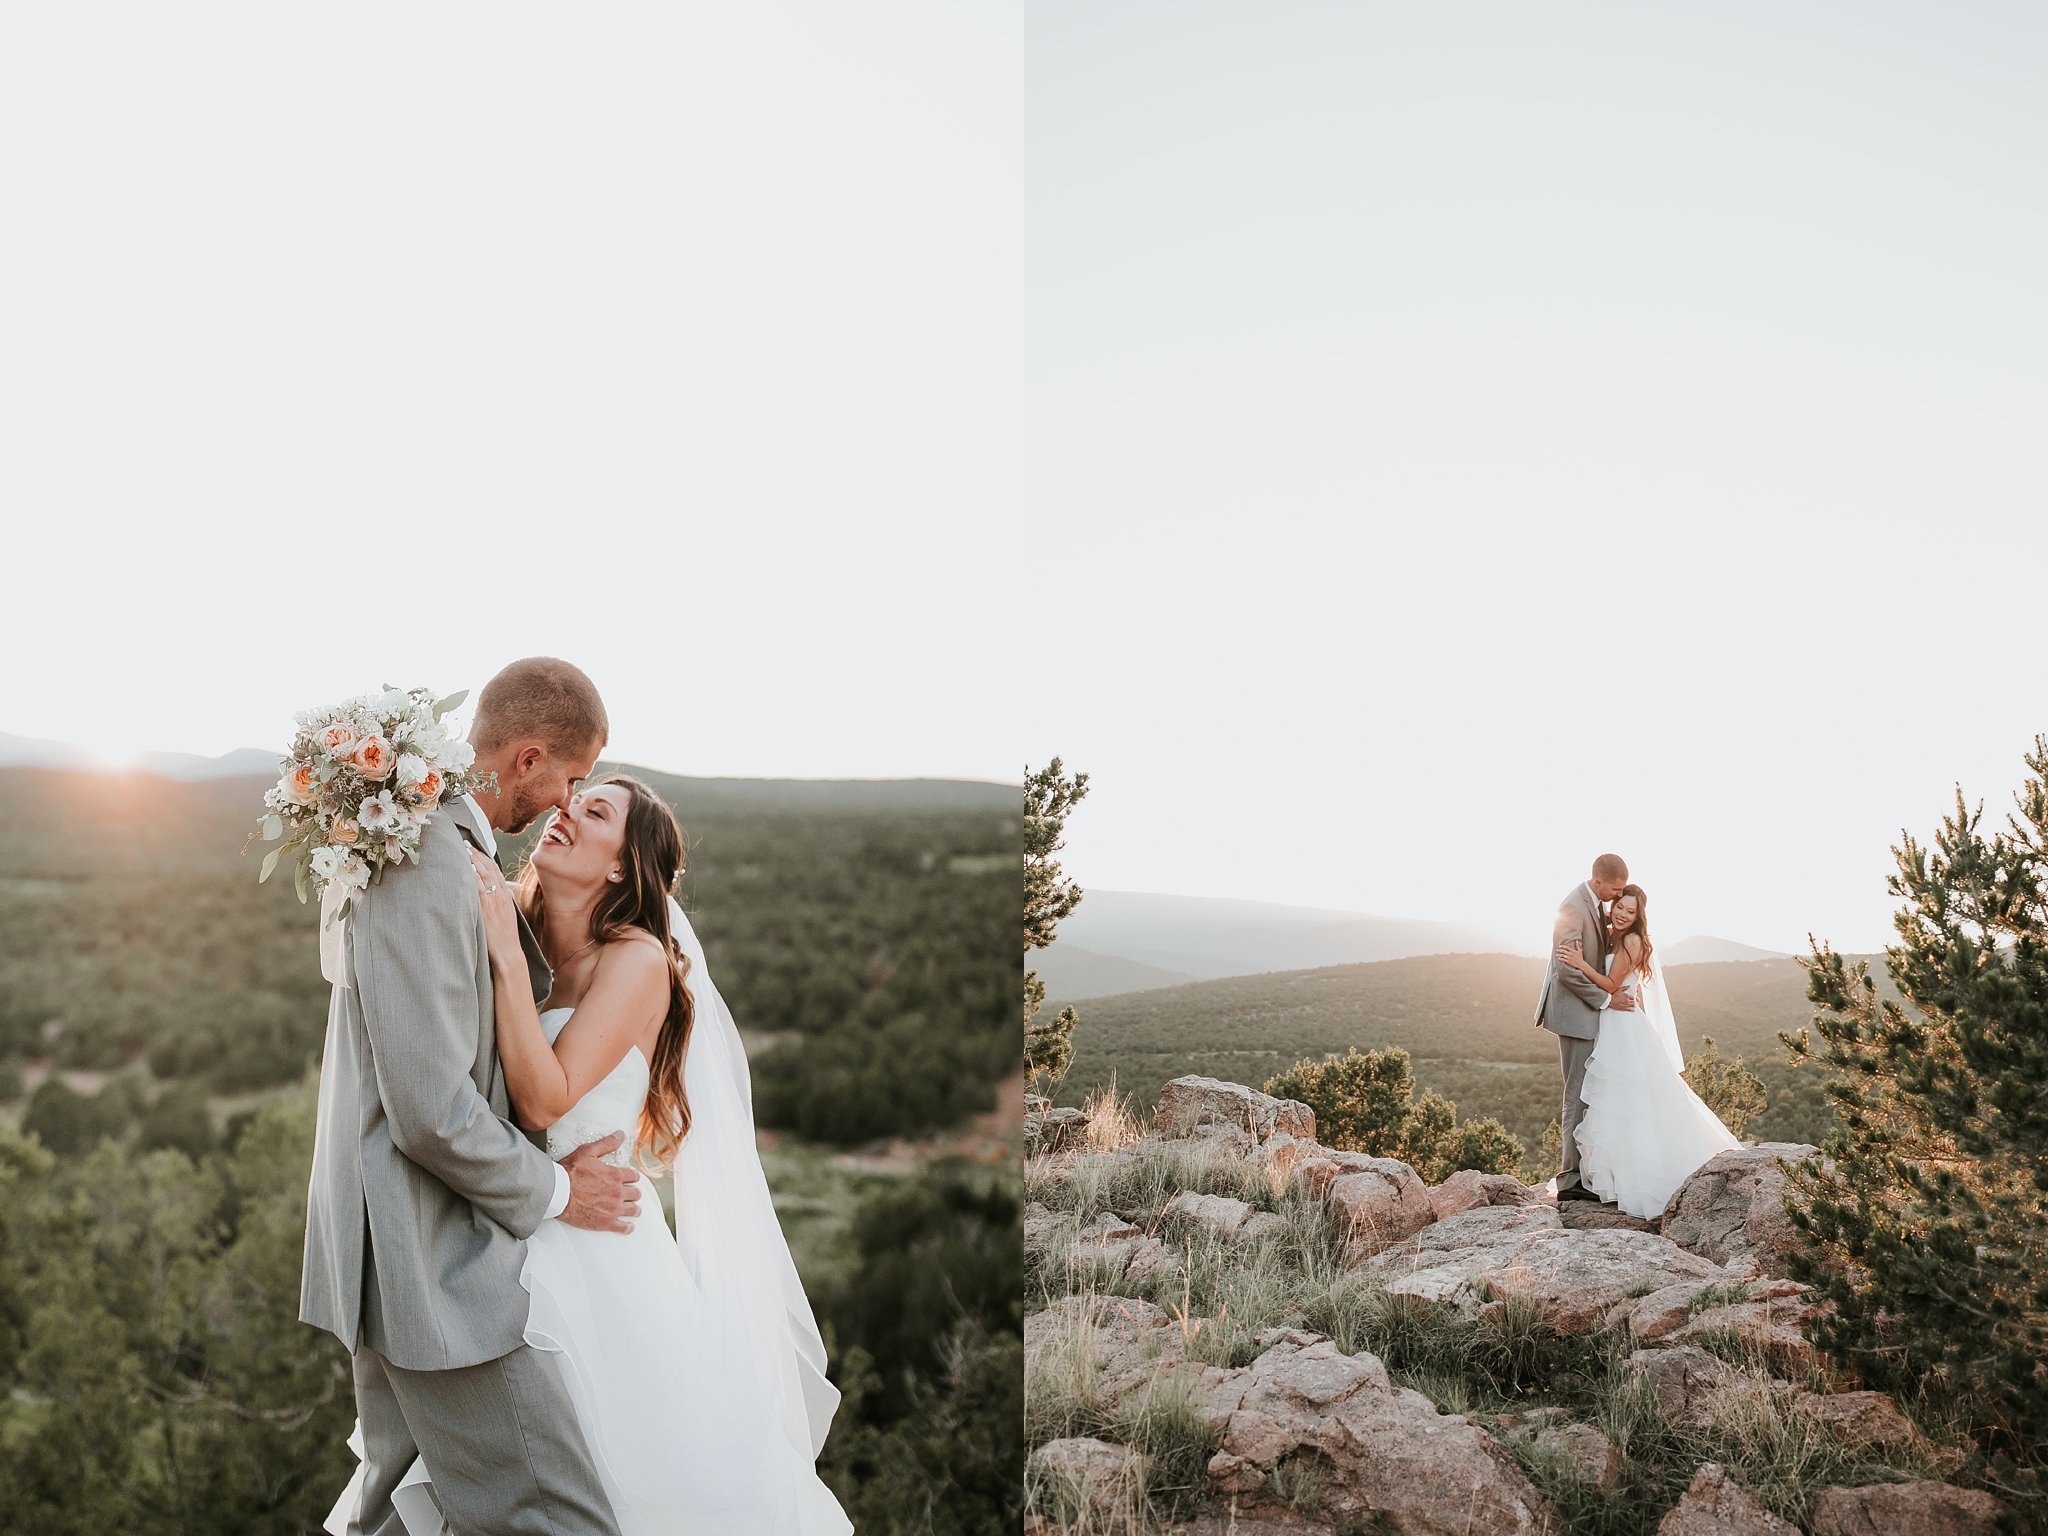 Alicia+lucia+photography+-+albuquerque+wedding+photographer+-+santa+fe+wedding+photography+-+new+mexico+wedding+photographer+-+new+mexico+wedding+-+albuquerque+wedding+-+santa+fe+wedding+-+wedding+romantics_0021.jpg